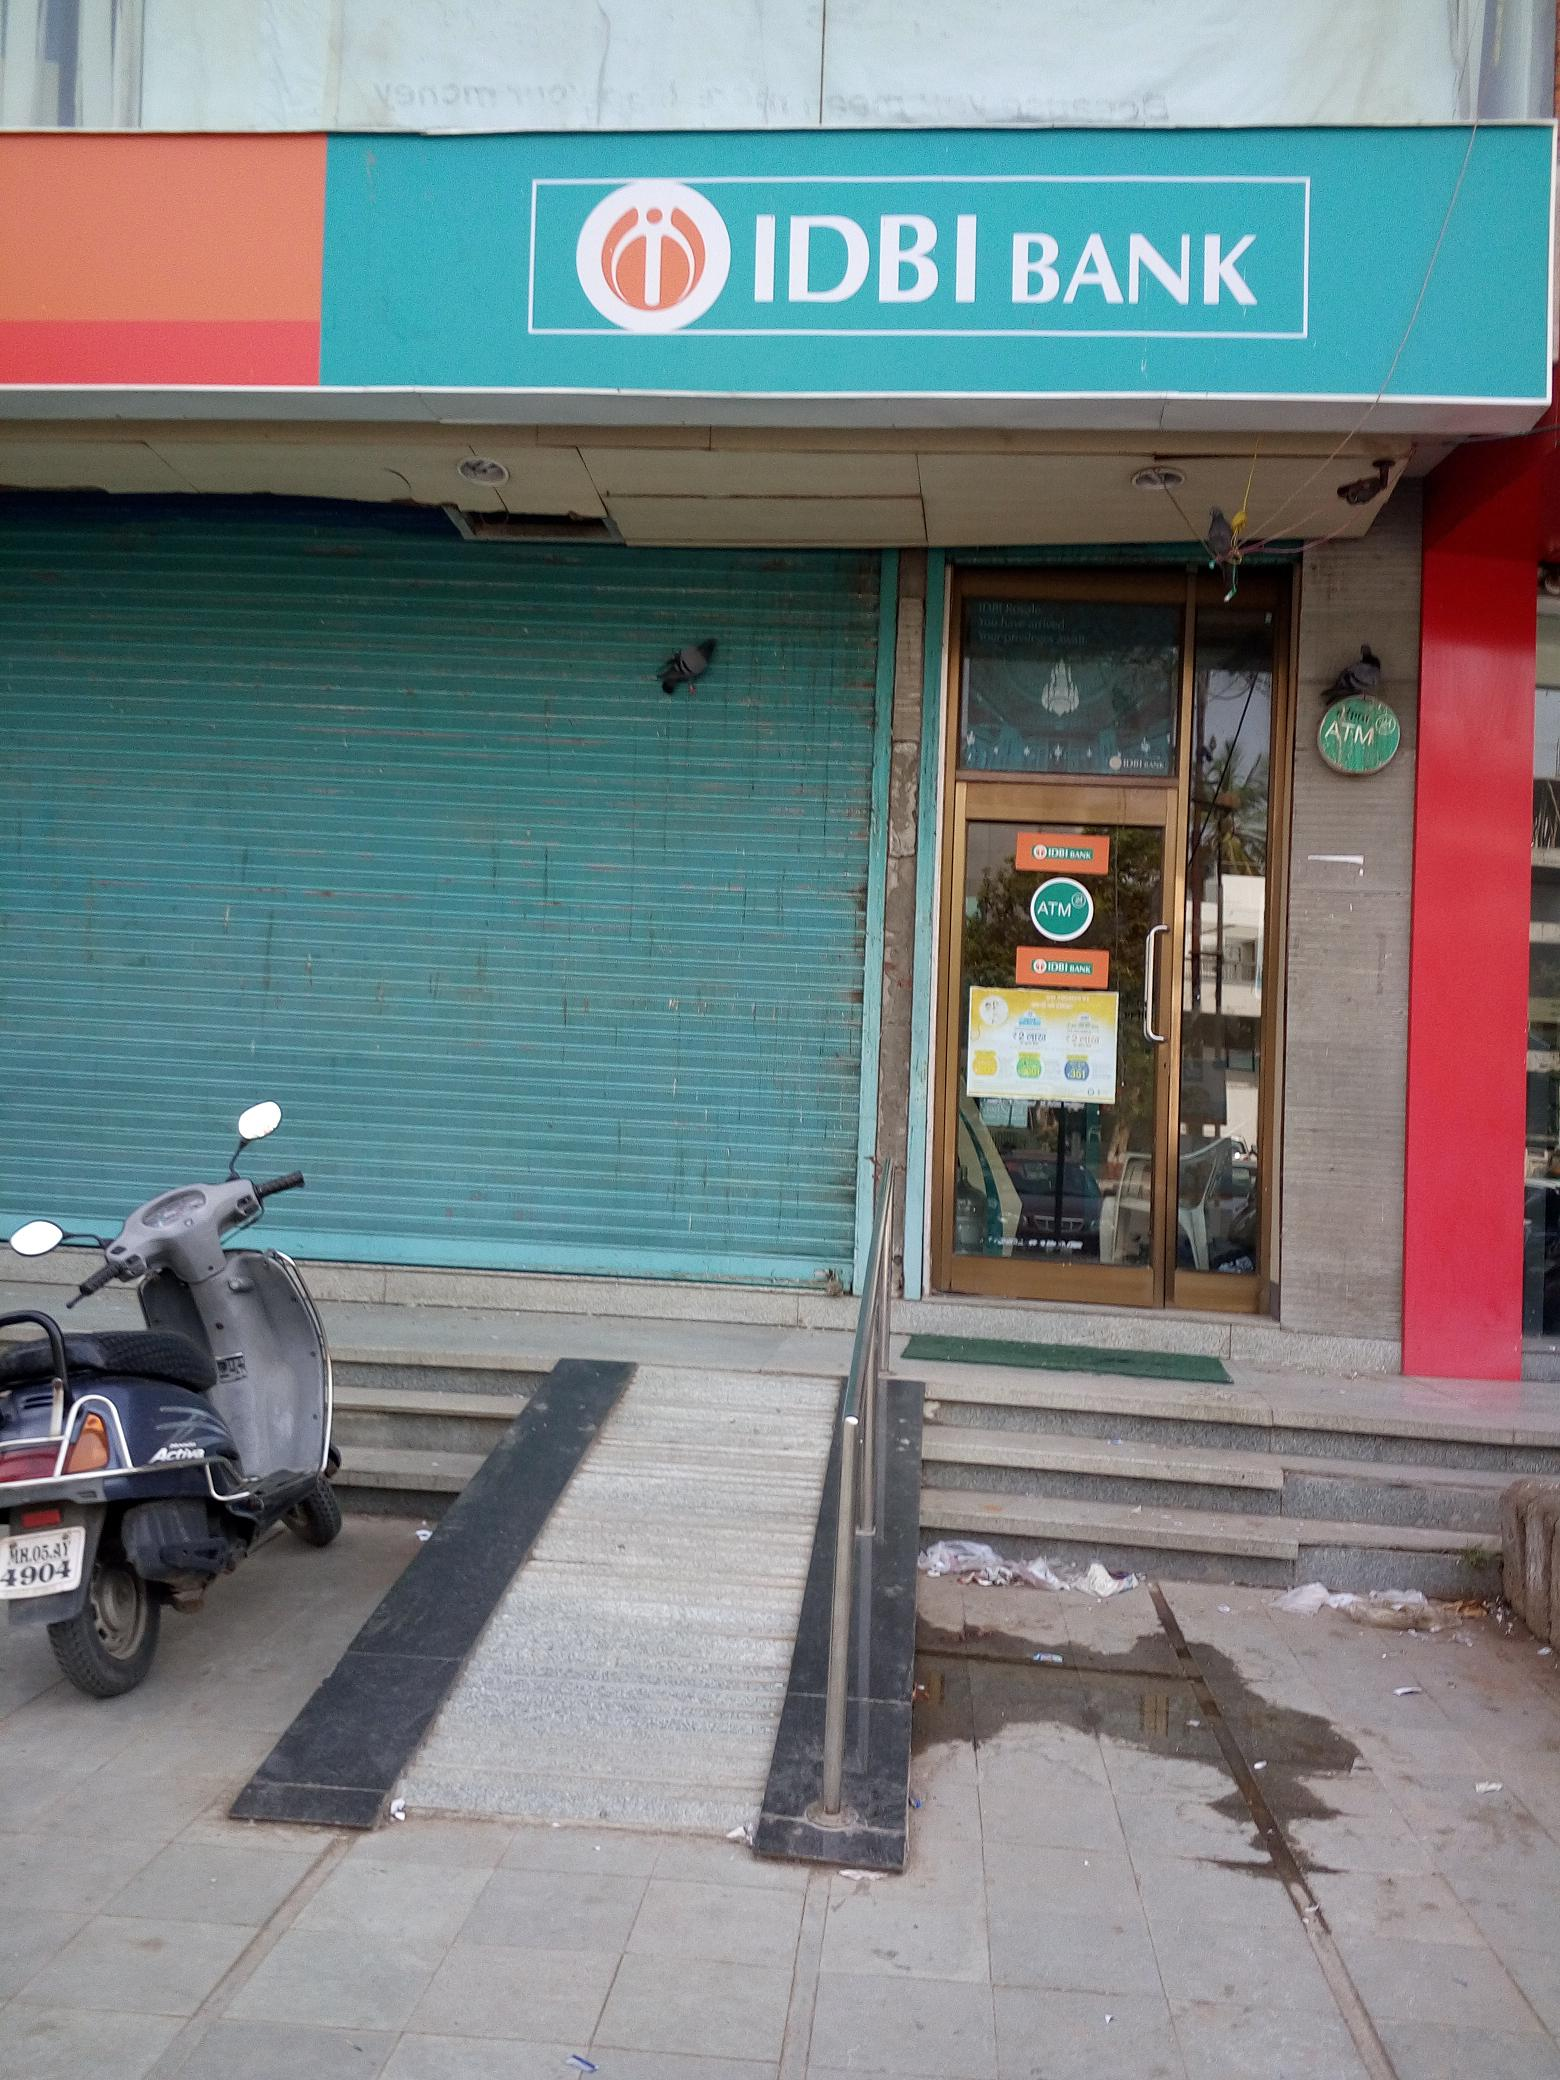 IDBI Bank Alkapuri Branch having Steep Ramp without Ralling It is totally Inaccessible for all Divyang